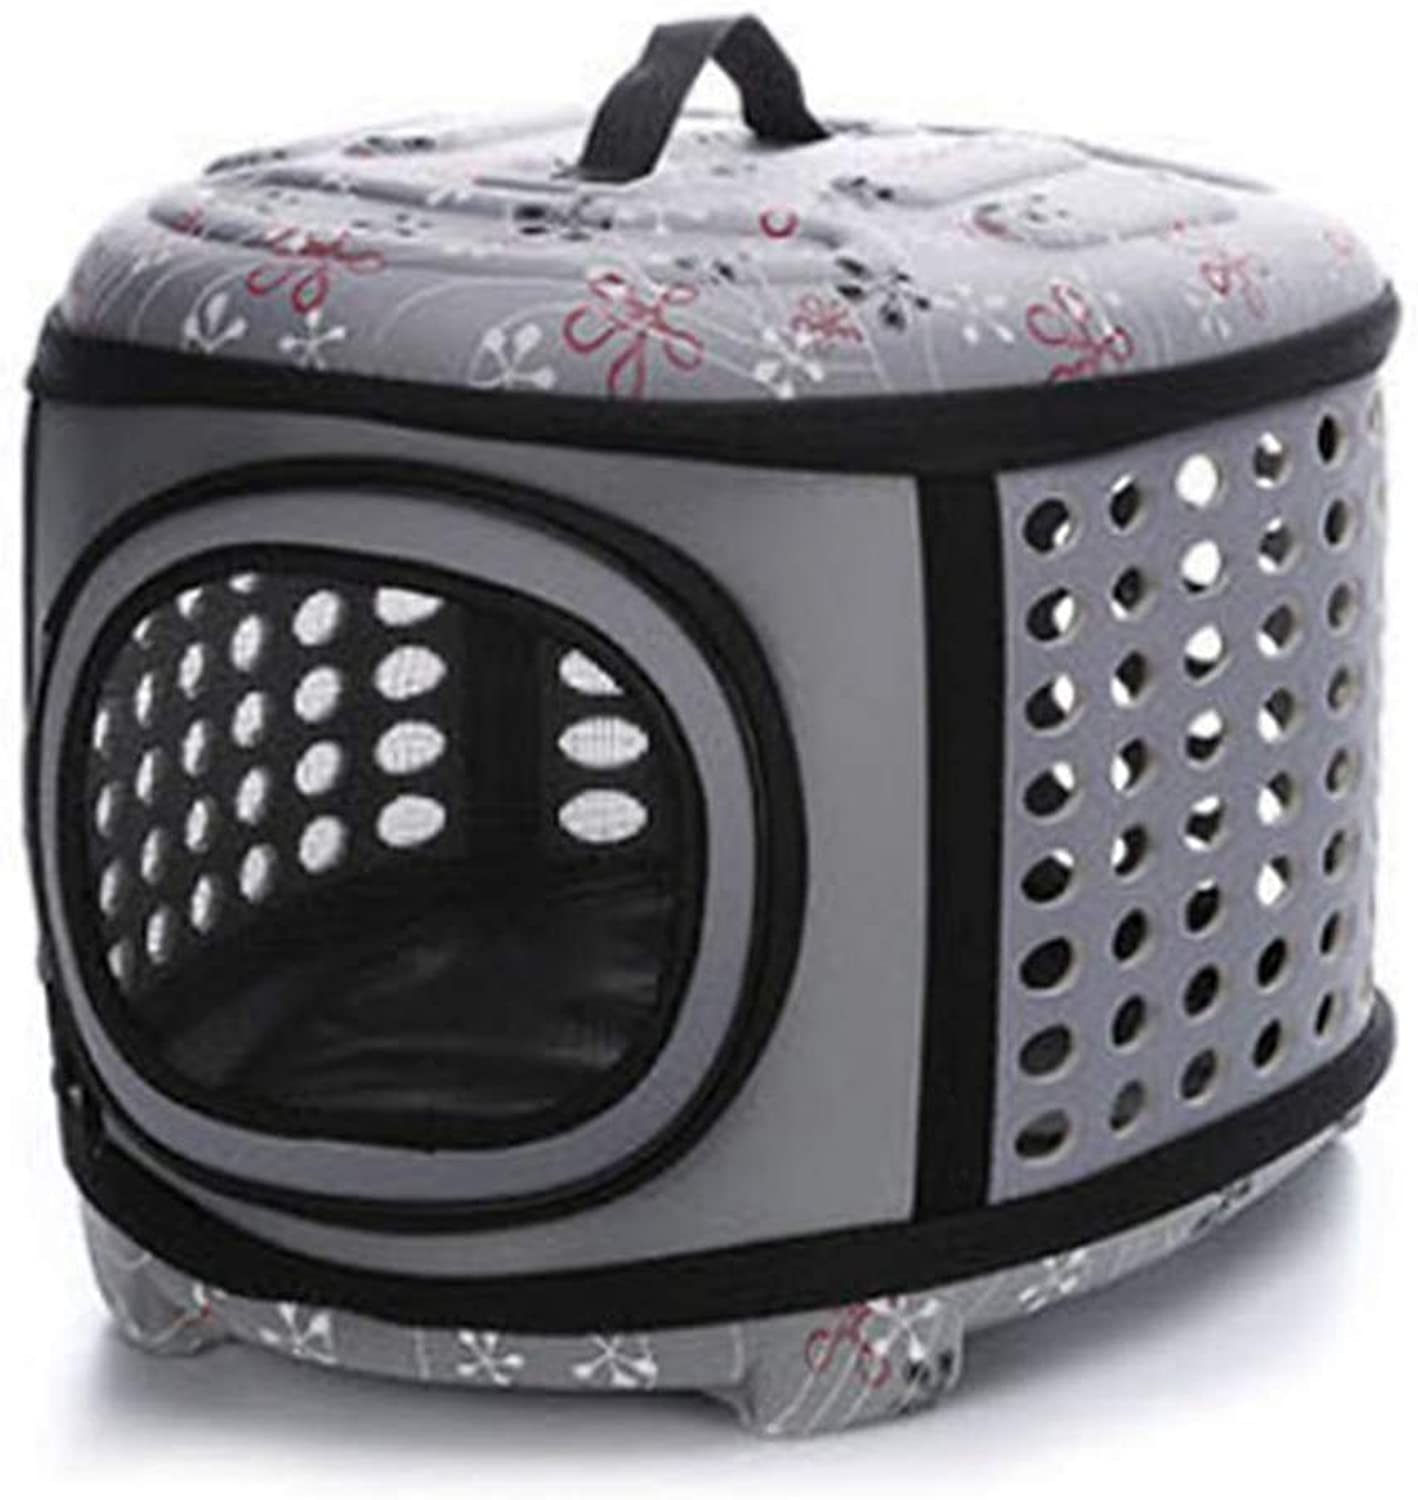 Pet Carrier Travel Bag for Small Dogs and Cats Hard Cover, Collapsable Portable,Traveling Pet Handbag Kennel House for Dog Cats,B